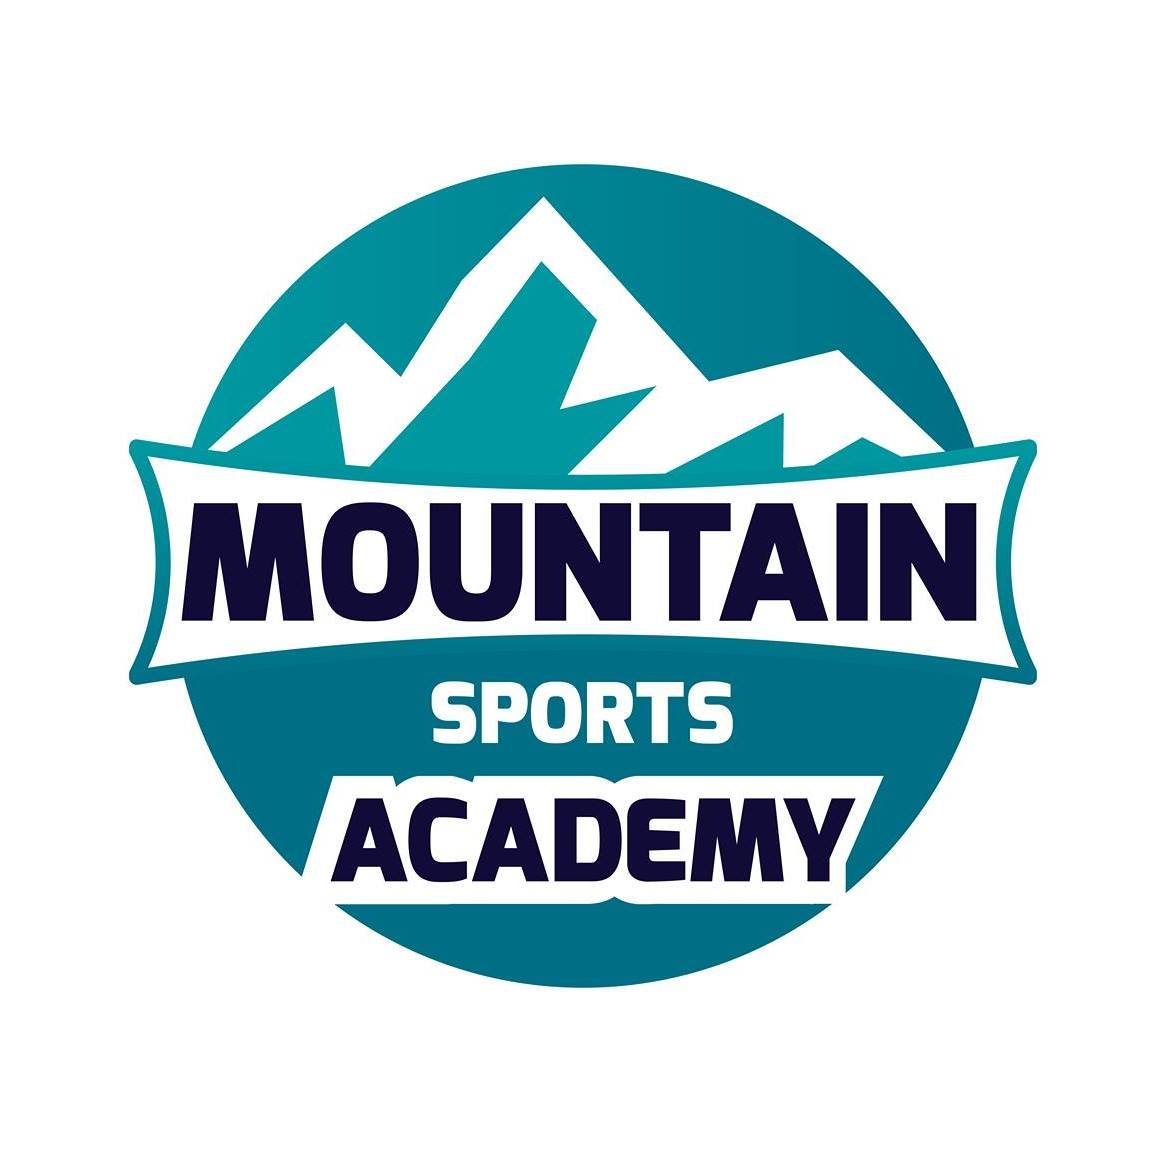 Mountain Sports Academy